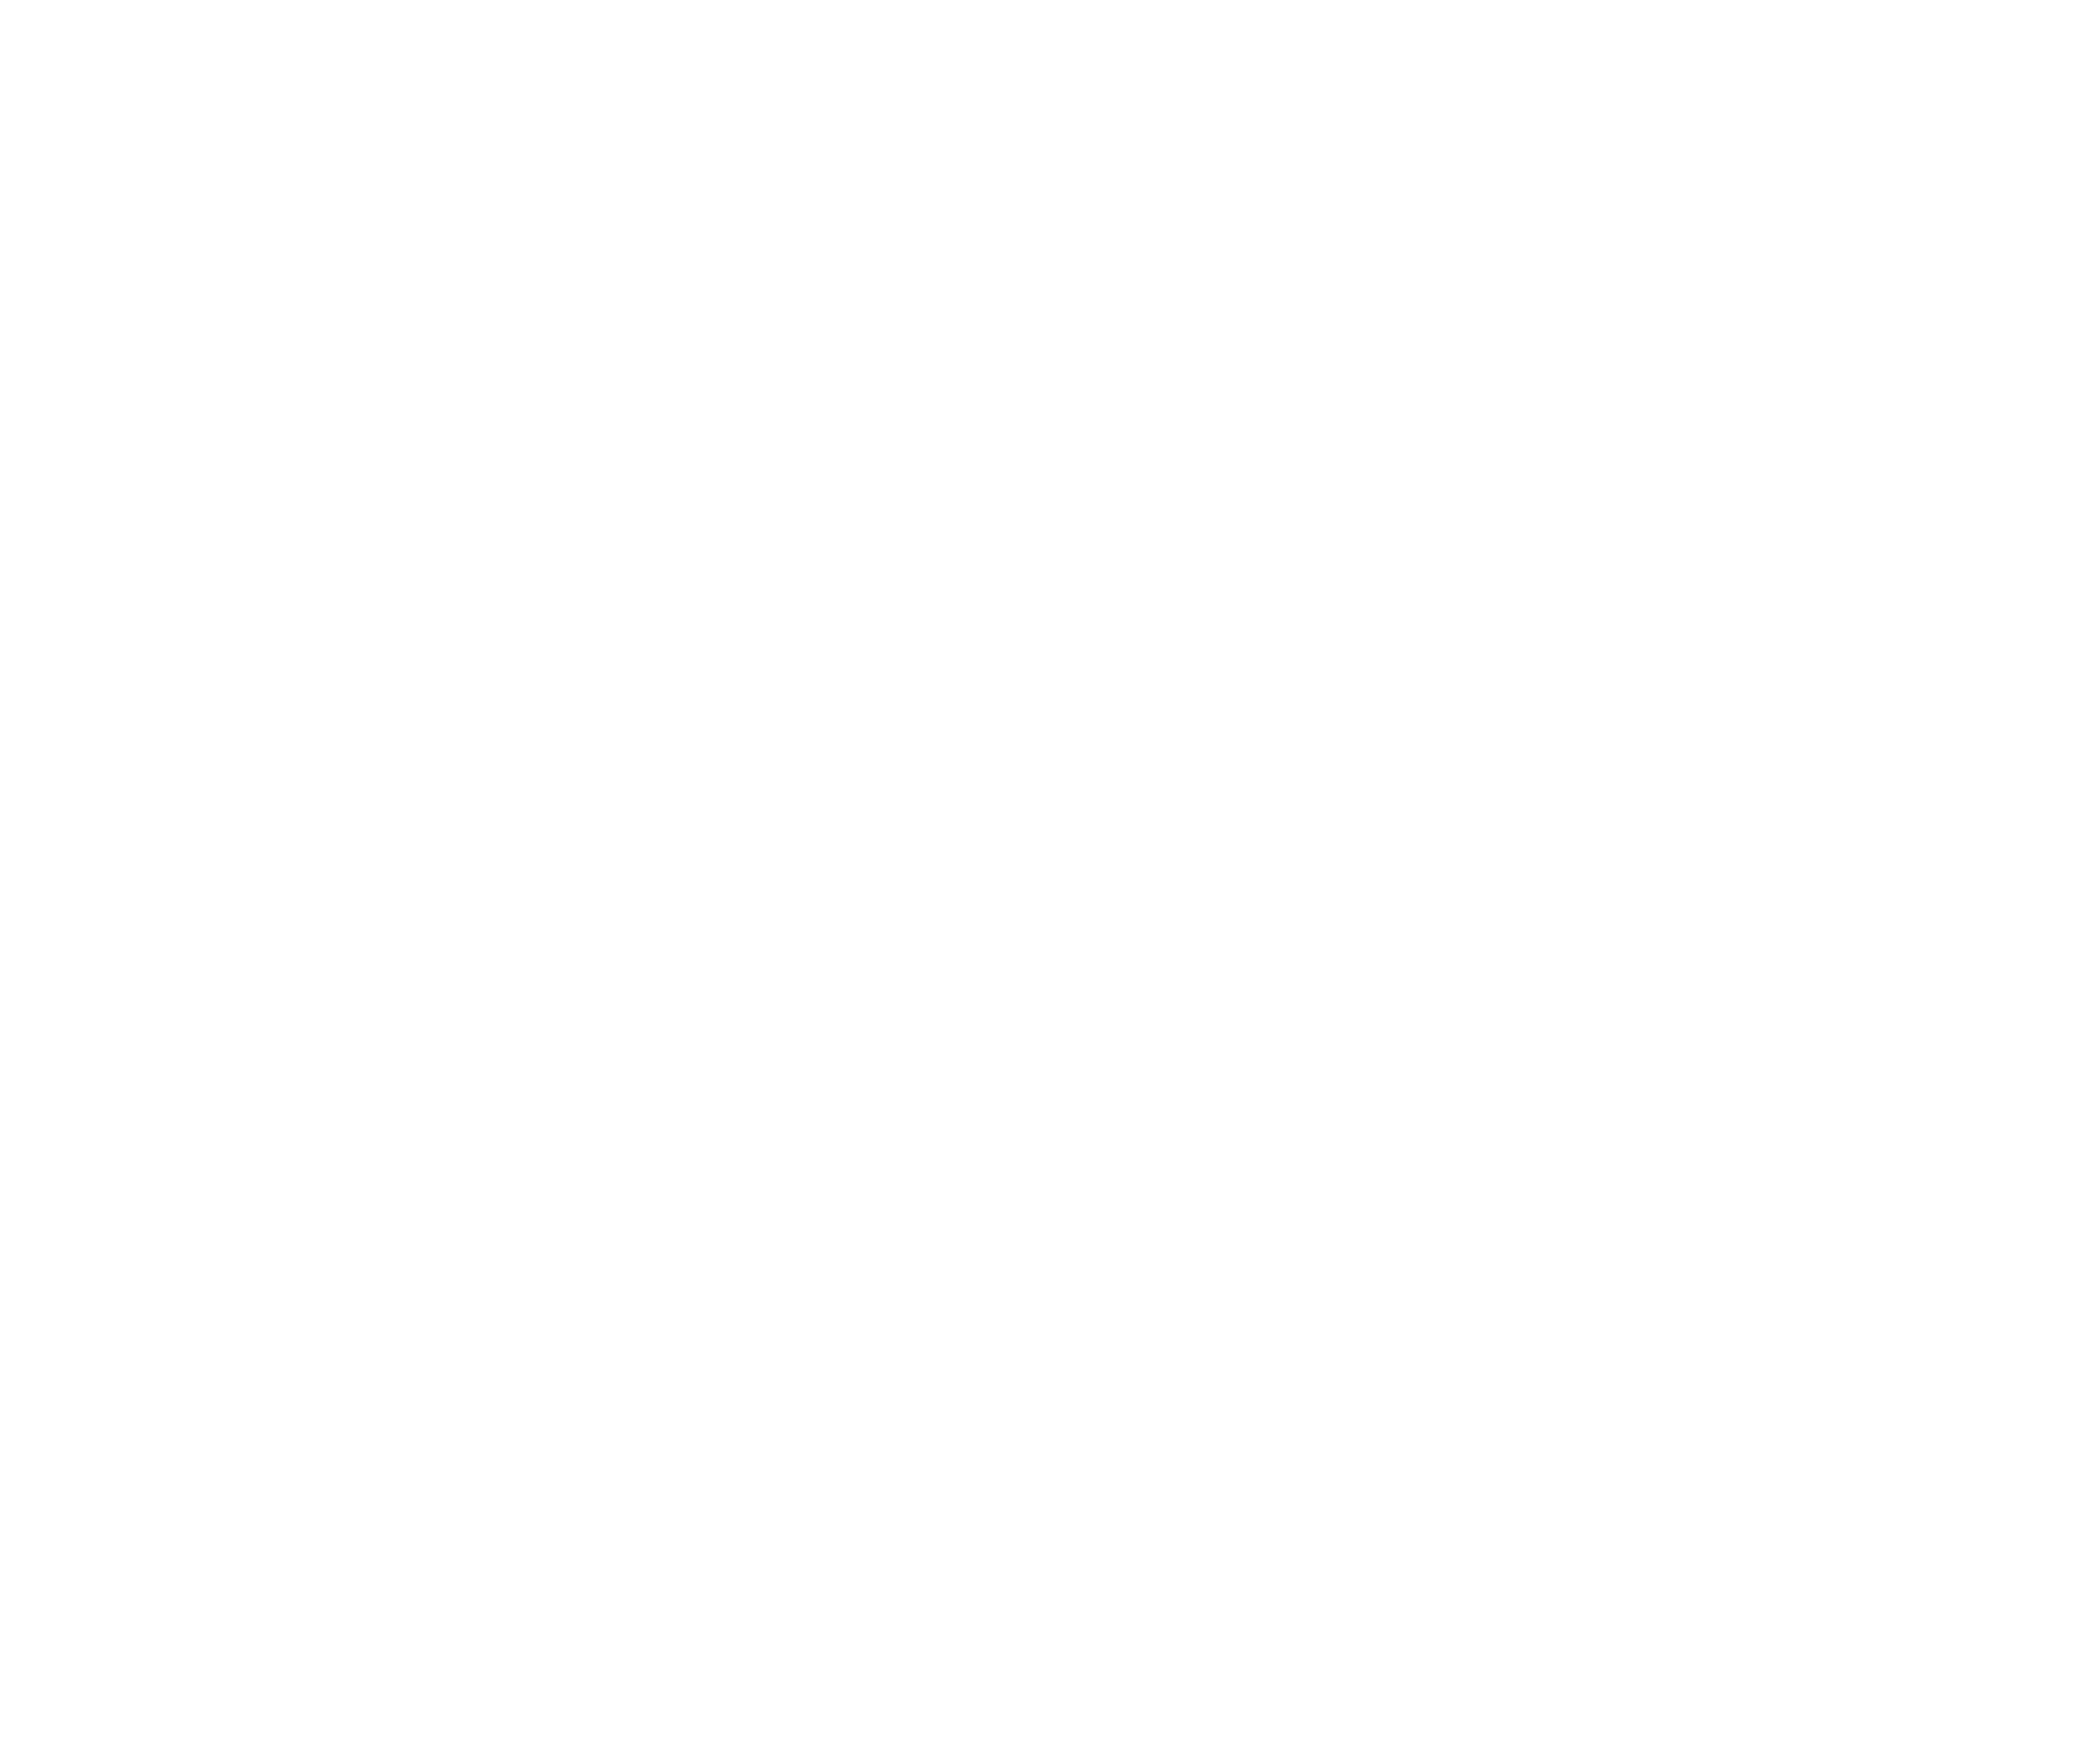 Official Selection - 307 Film Festival - 2019